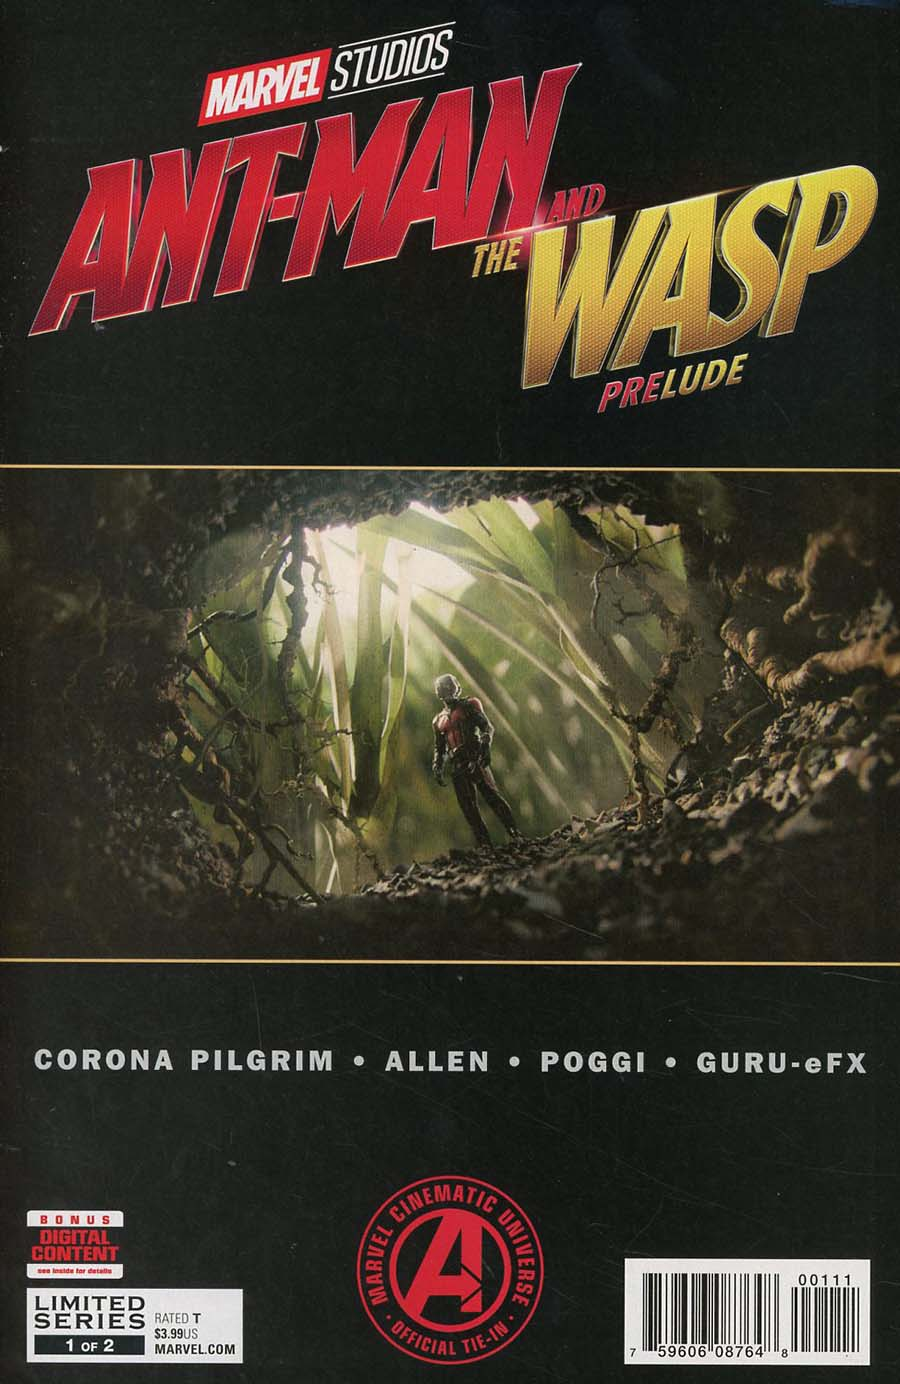 Marvels Ant-Man And The Wasp Prelude #1